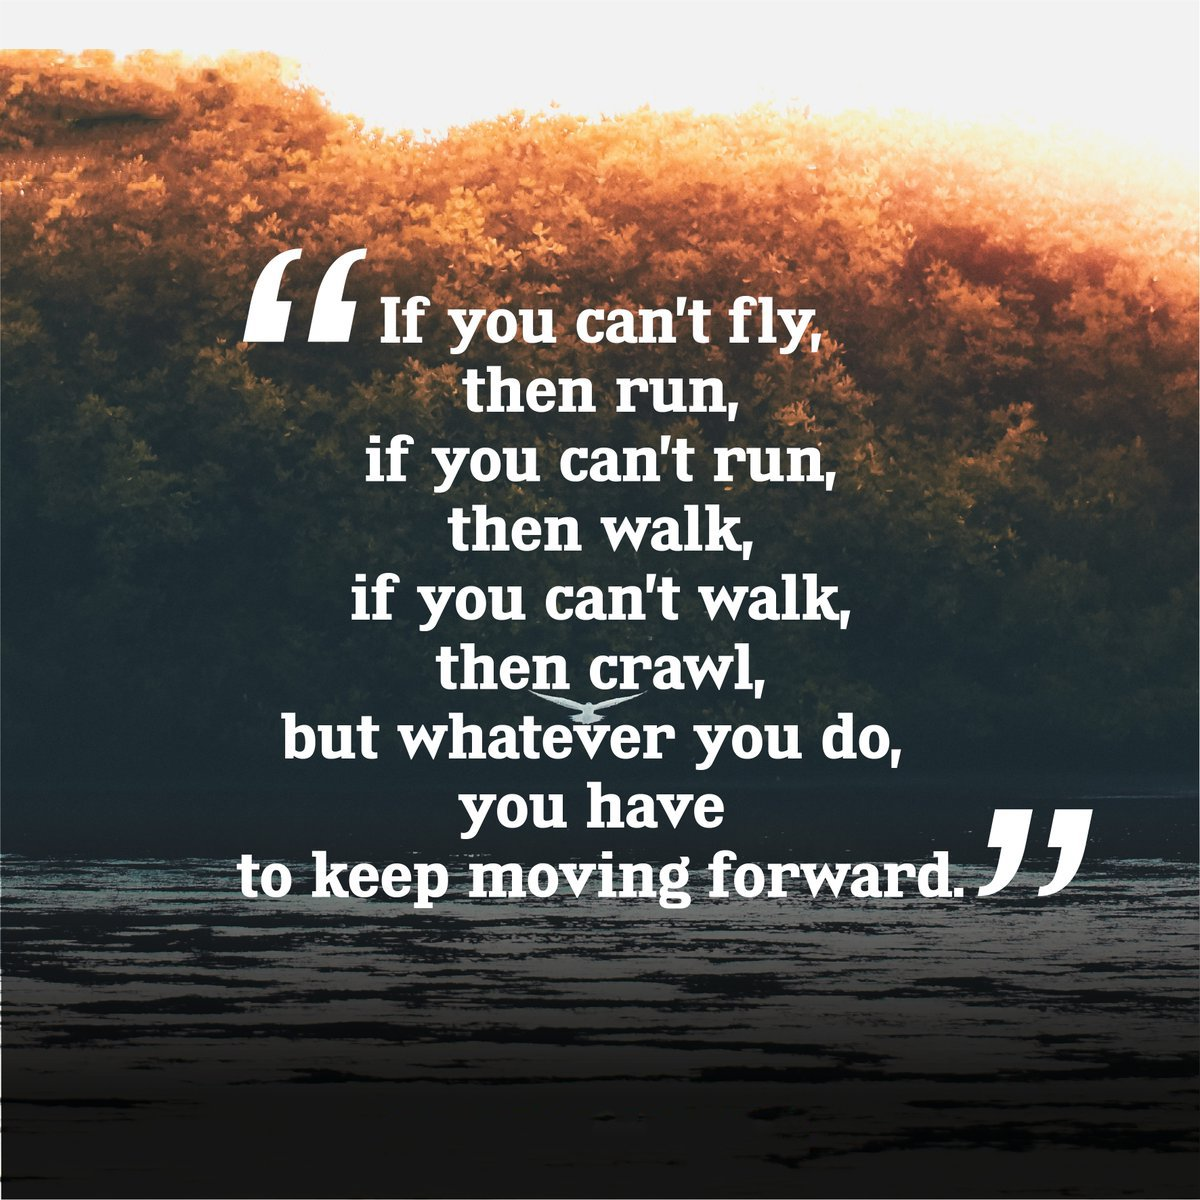 If You Can&#39;t Fly,#TuesdayThoughts #tuesdaymotivation #Entrepreneur #Startup #Success #MakeYourOwnLane #defstar5 #mpgvip #motivation #quotes<br>http://pic.twitter.com/ZuarJWi8Ii